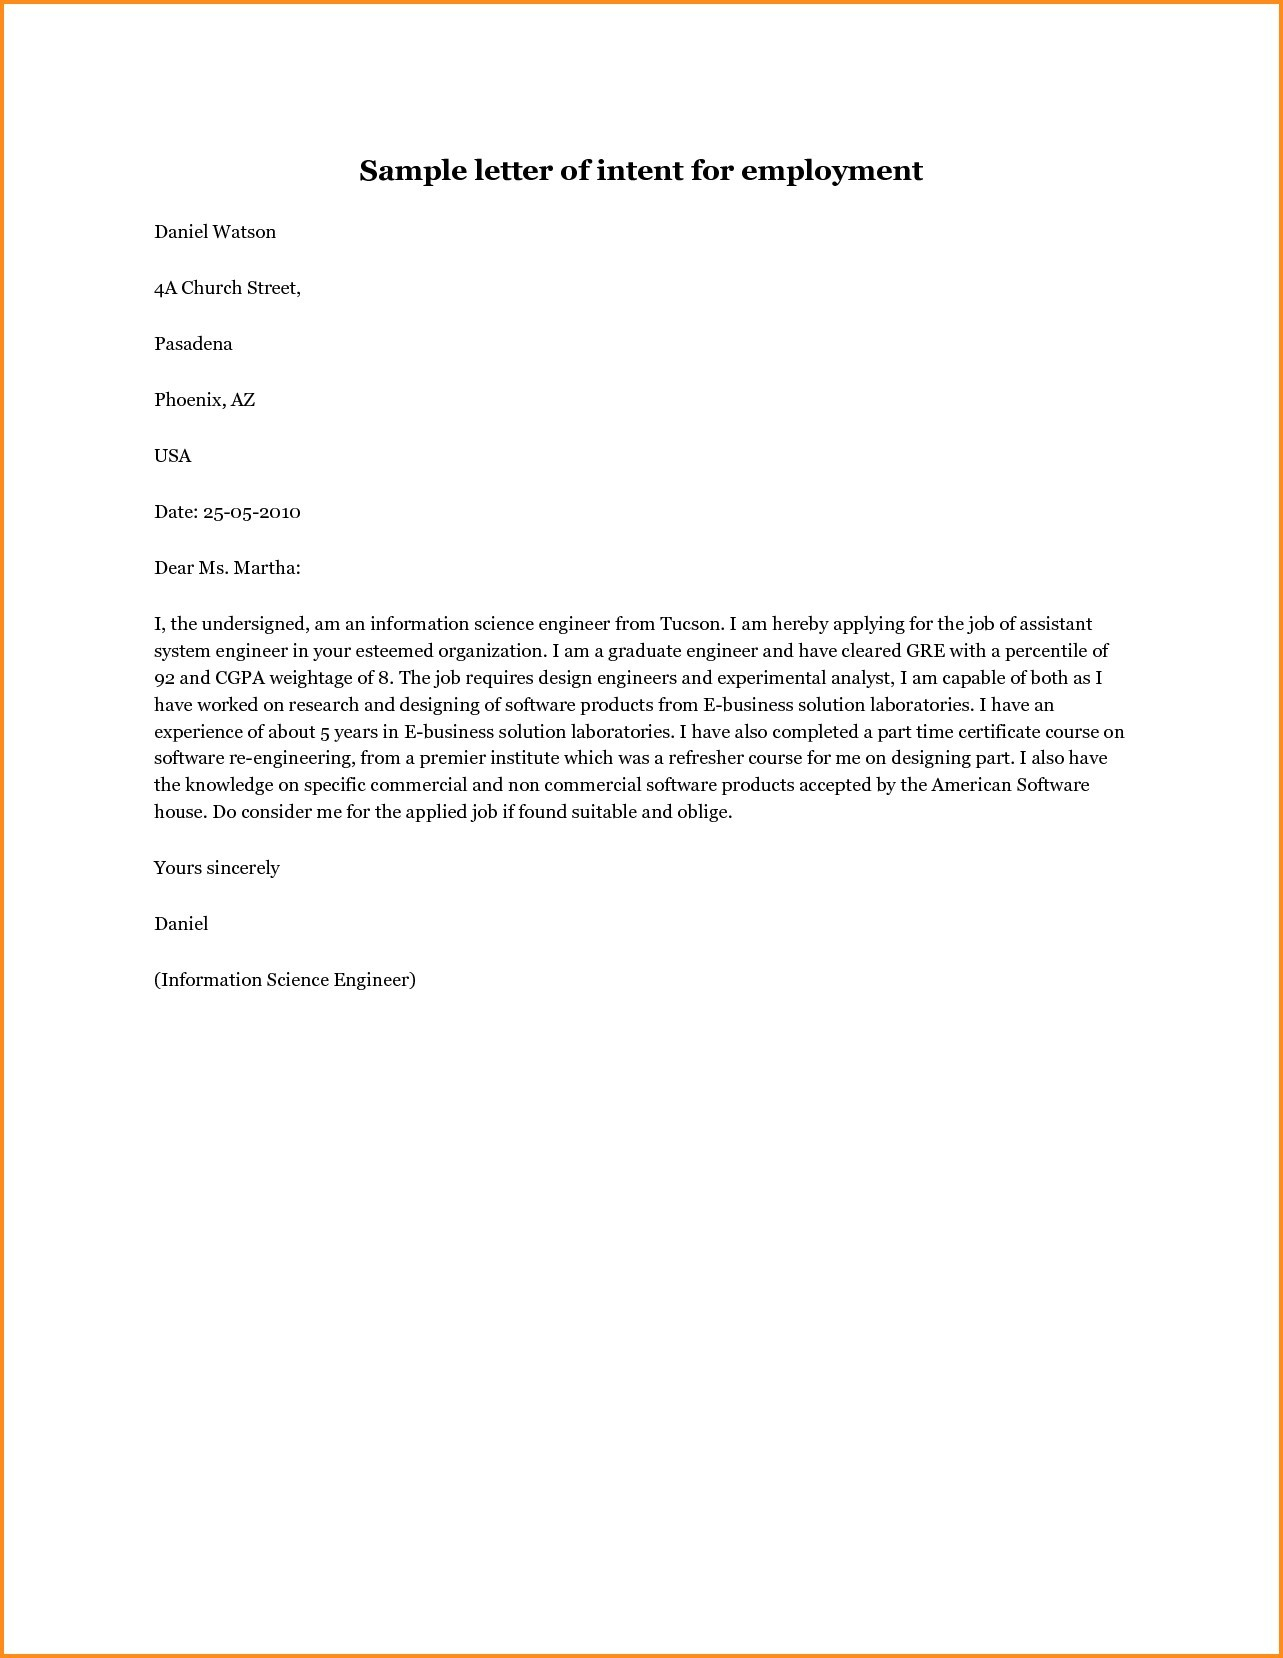 Letter Of Intent to Hire Template - Job Letter Intent Inspirationa Letter Intent Template Job New